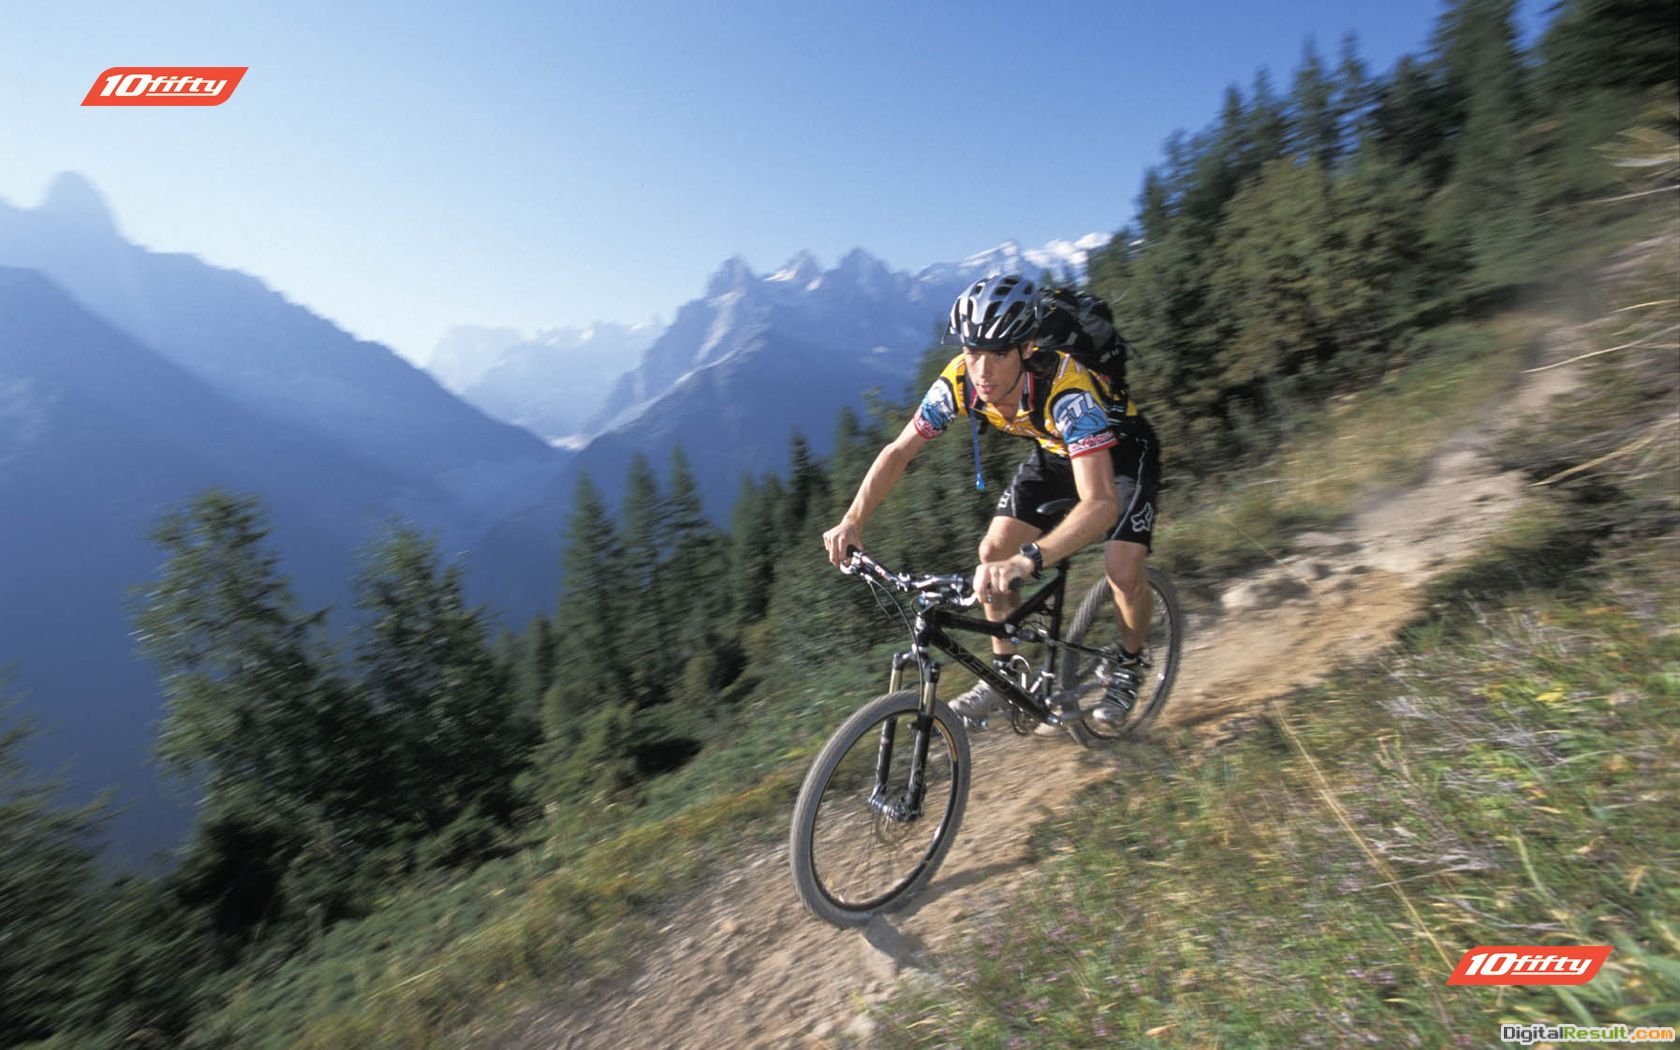 Mountain Biking Wallpapers from 10fifty 315